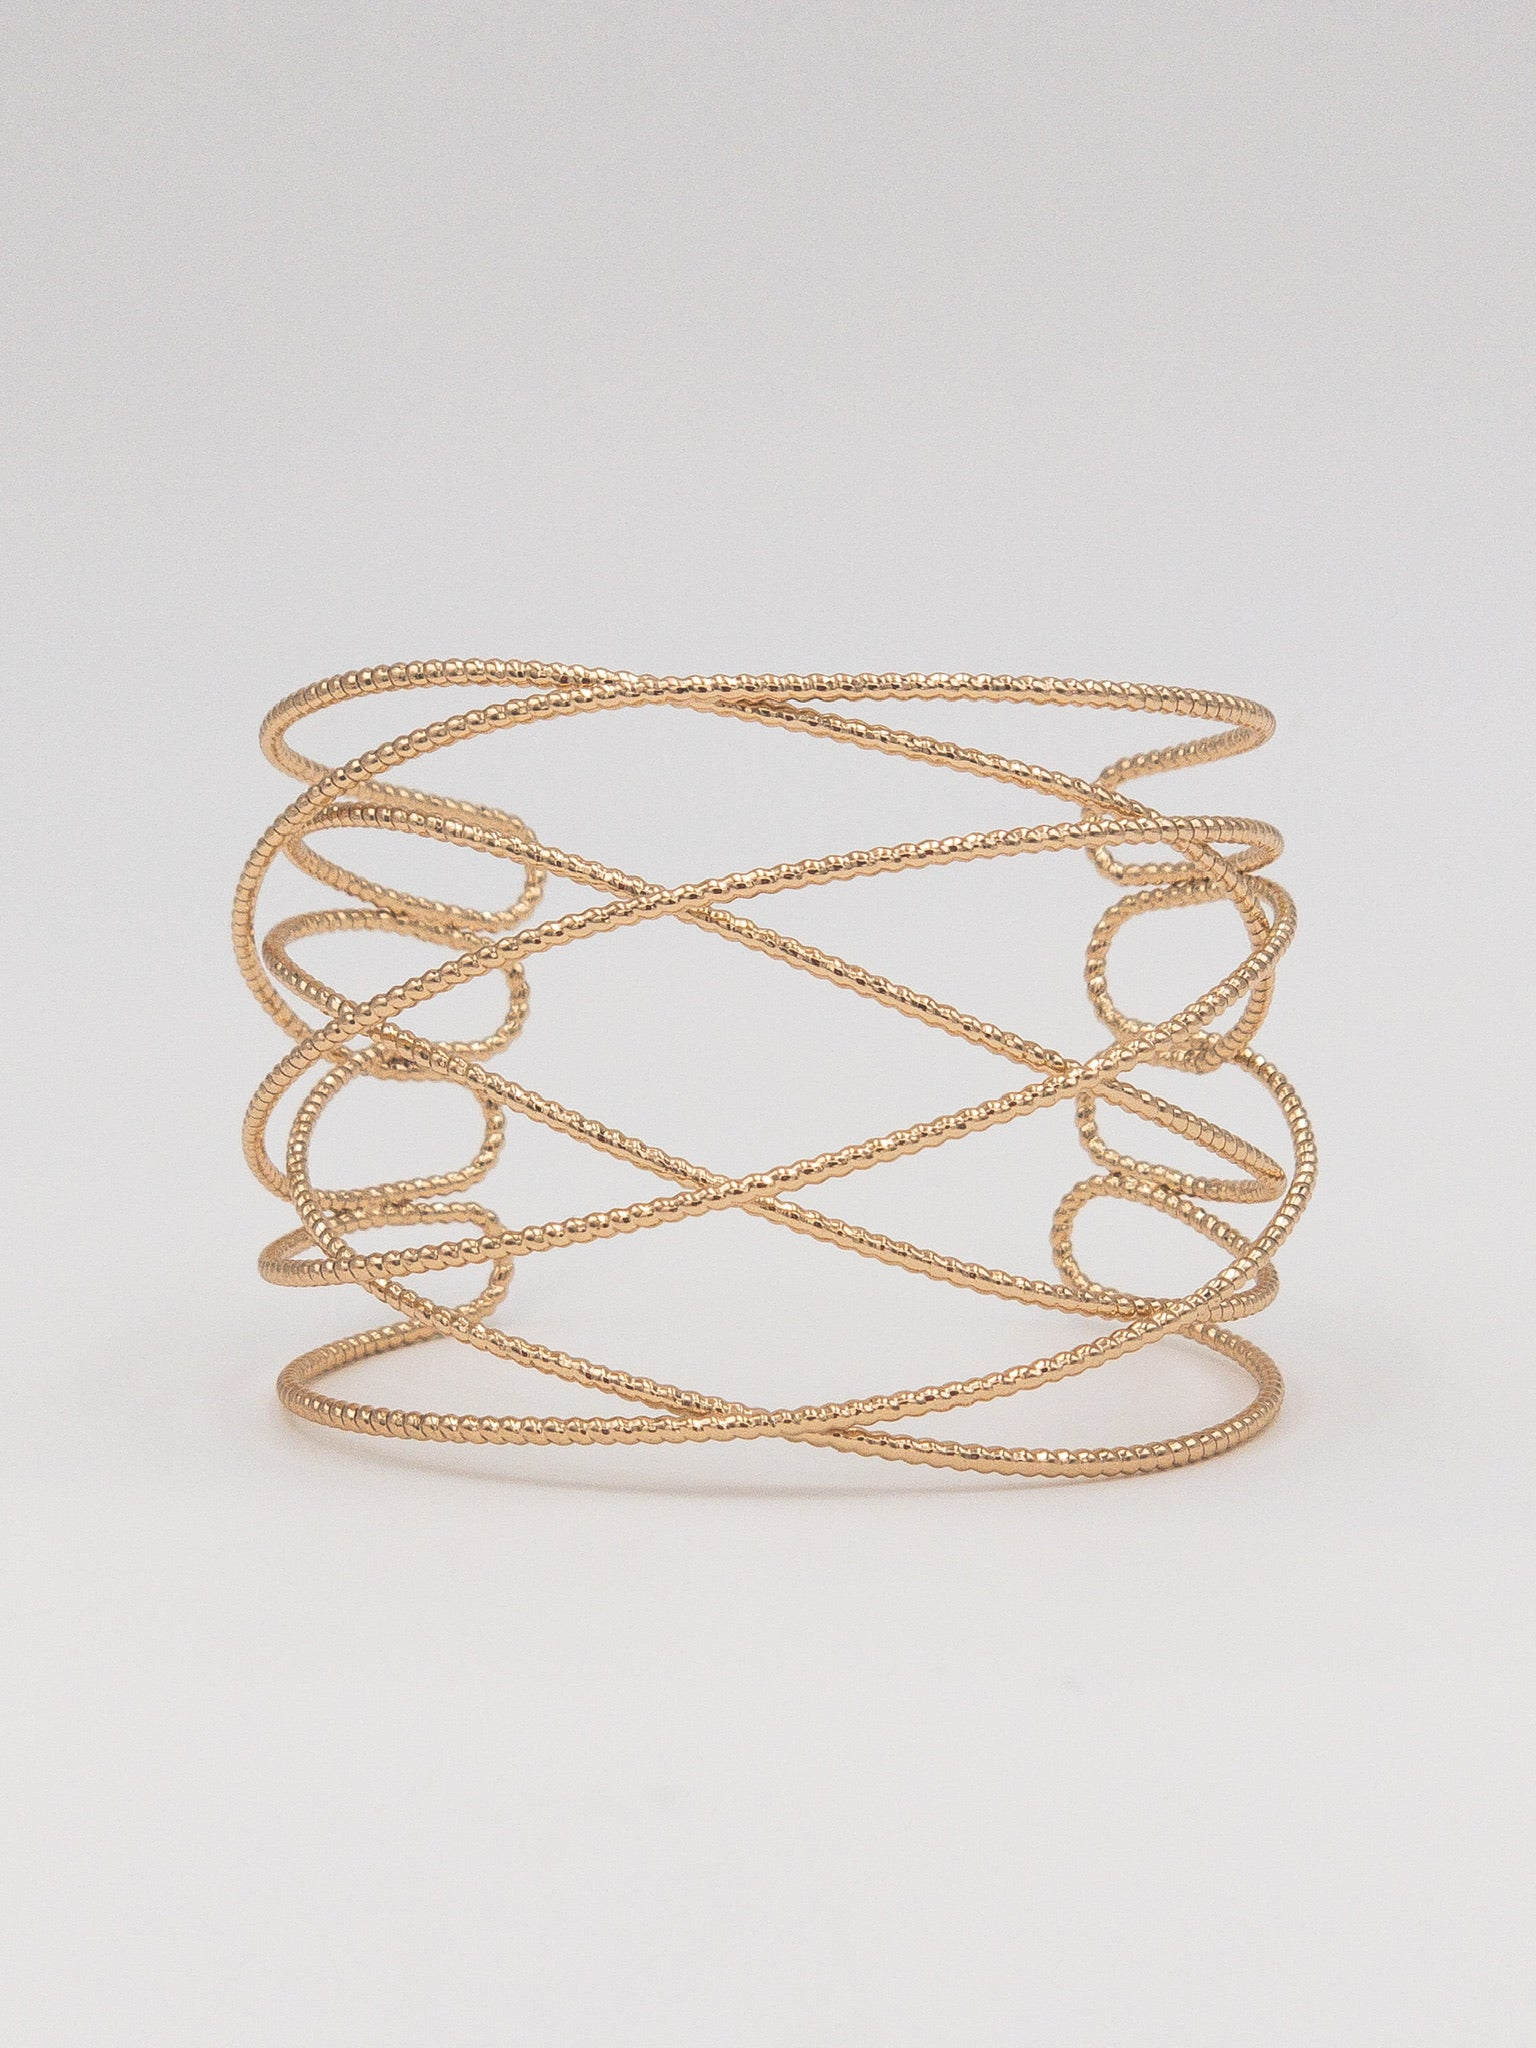 Adelaide Gold Cuff Bracelet